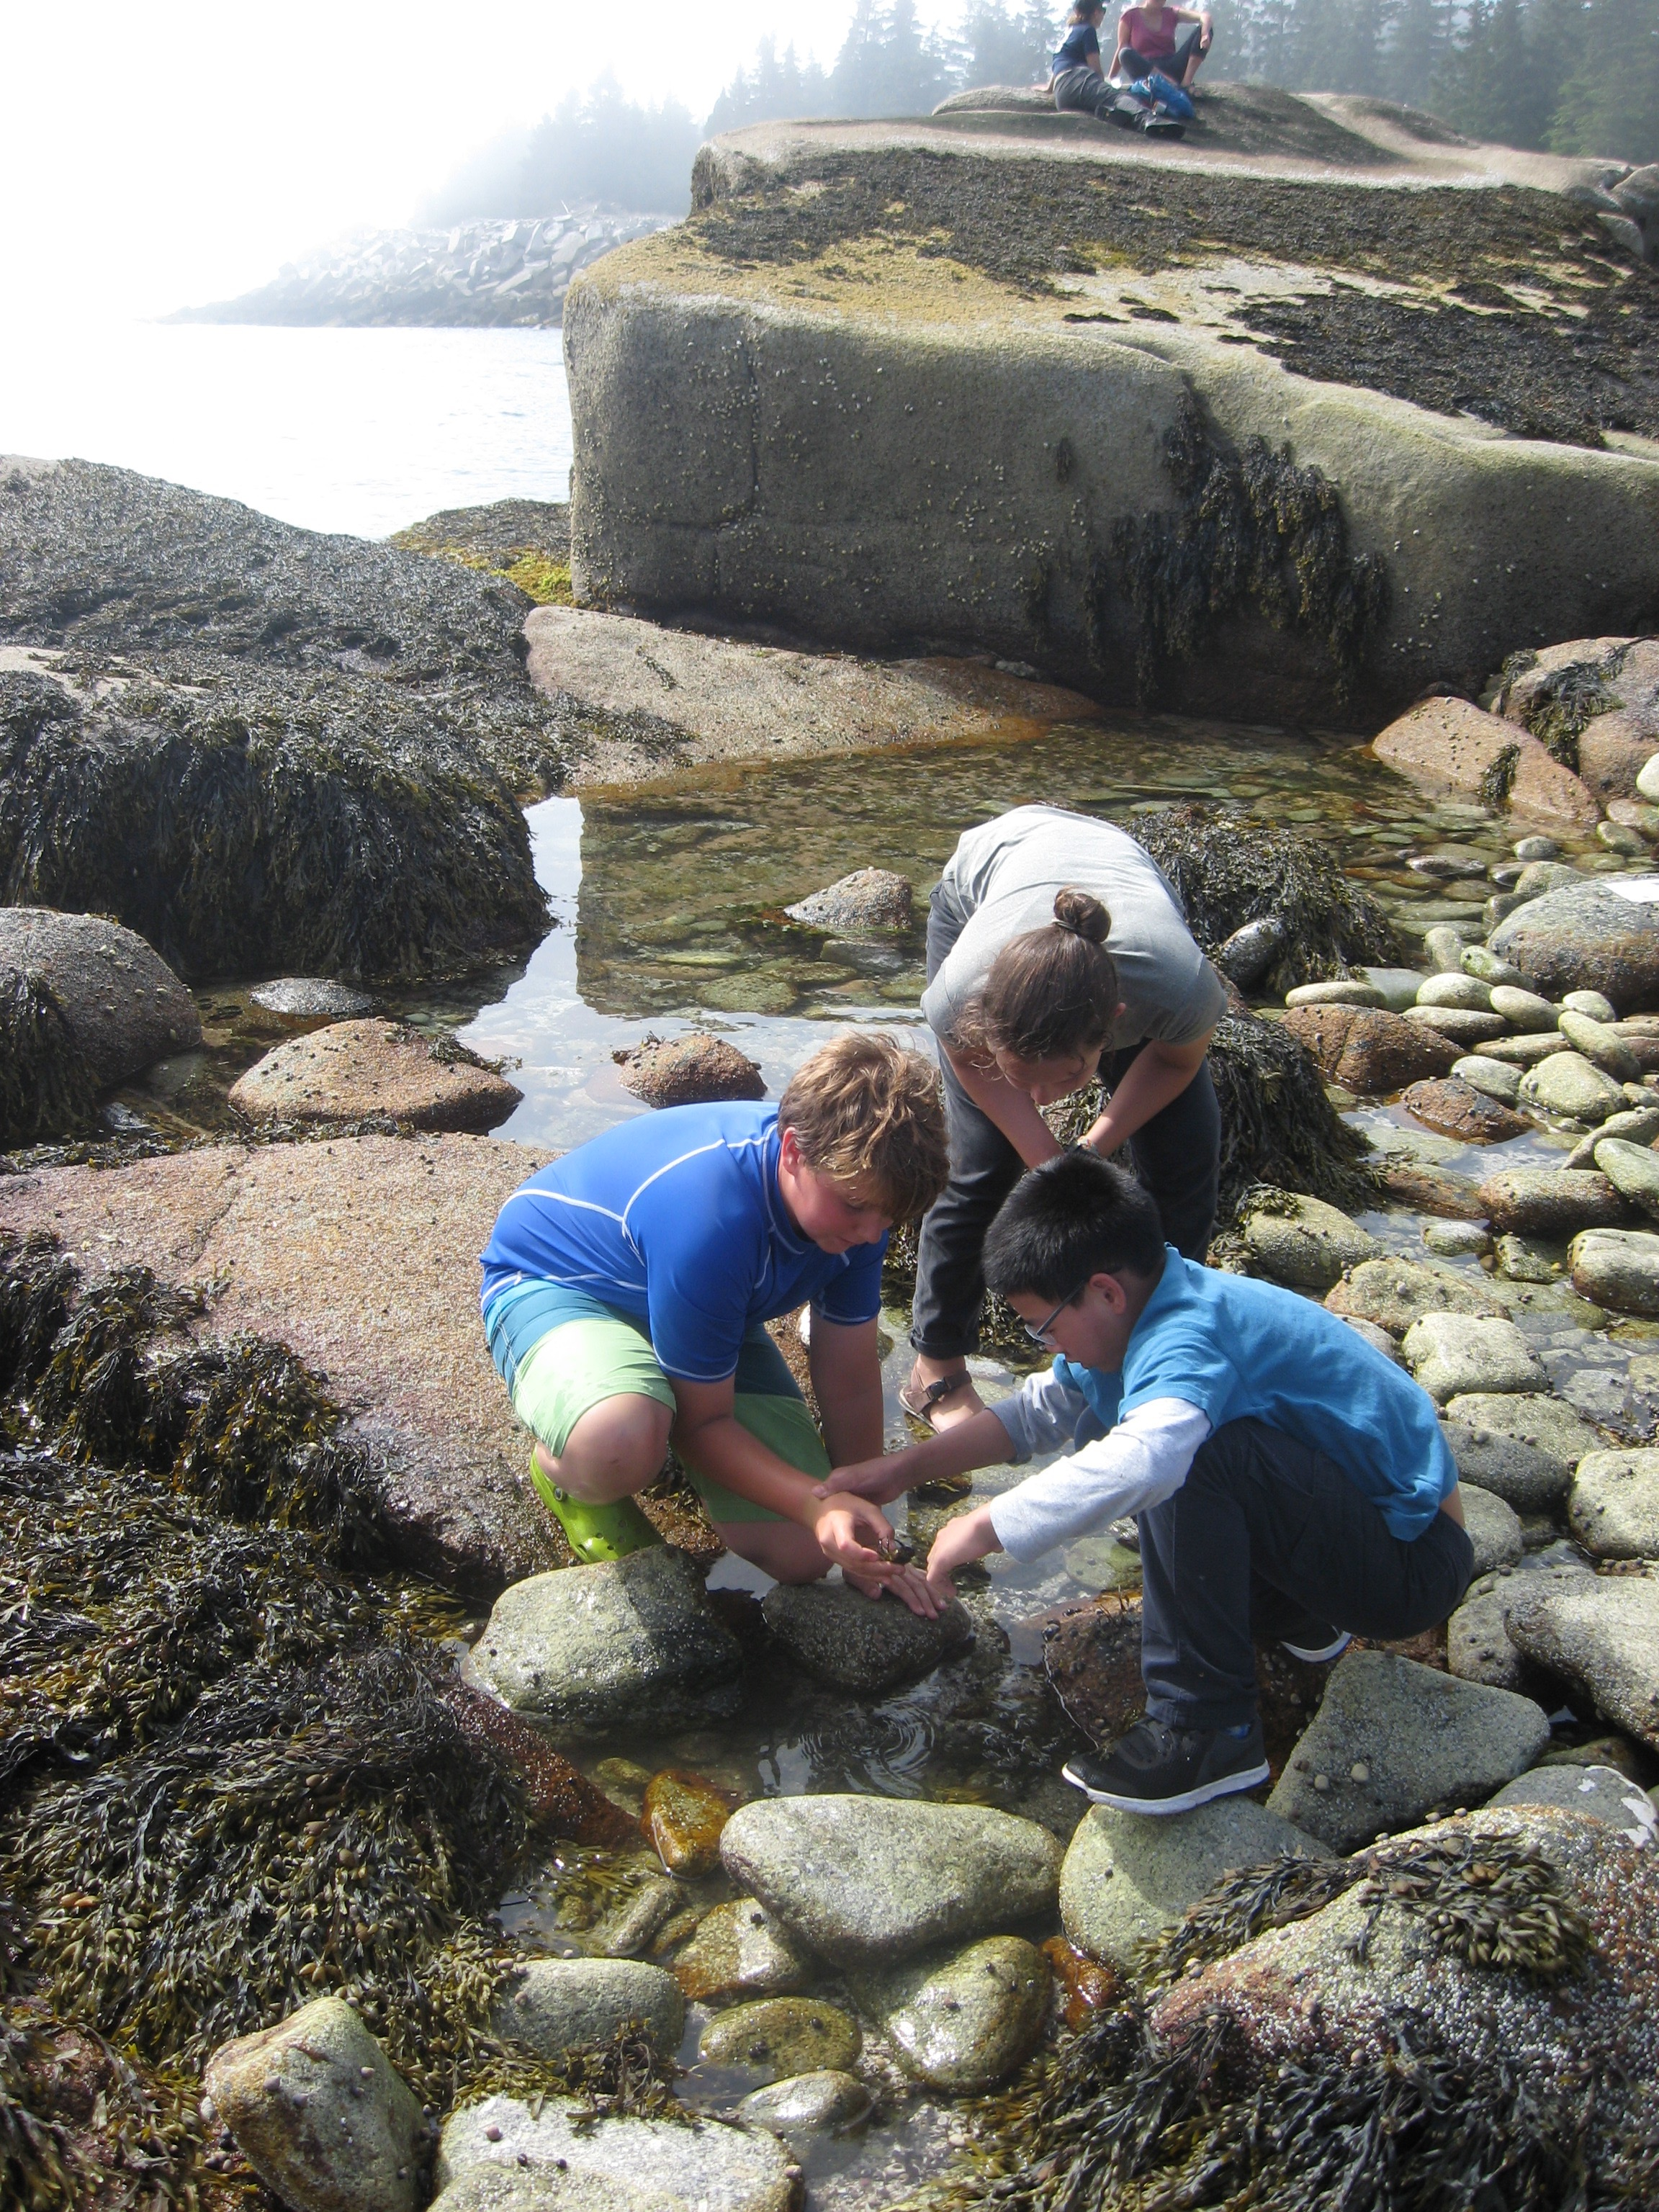 Finding something special in the intertidal zone.